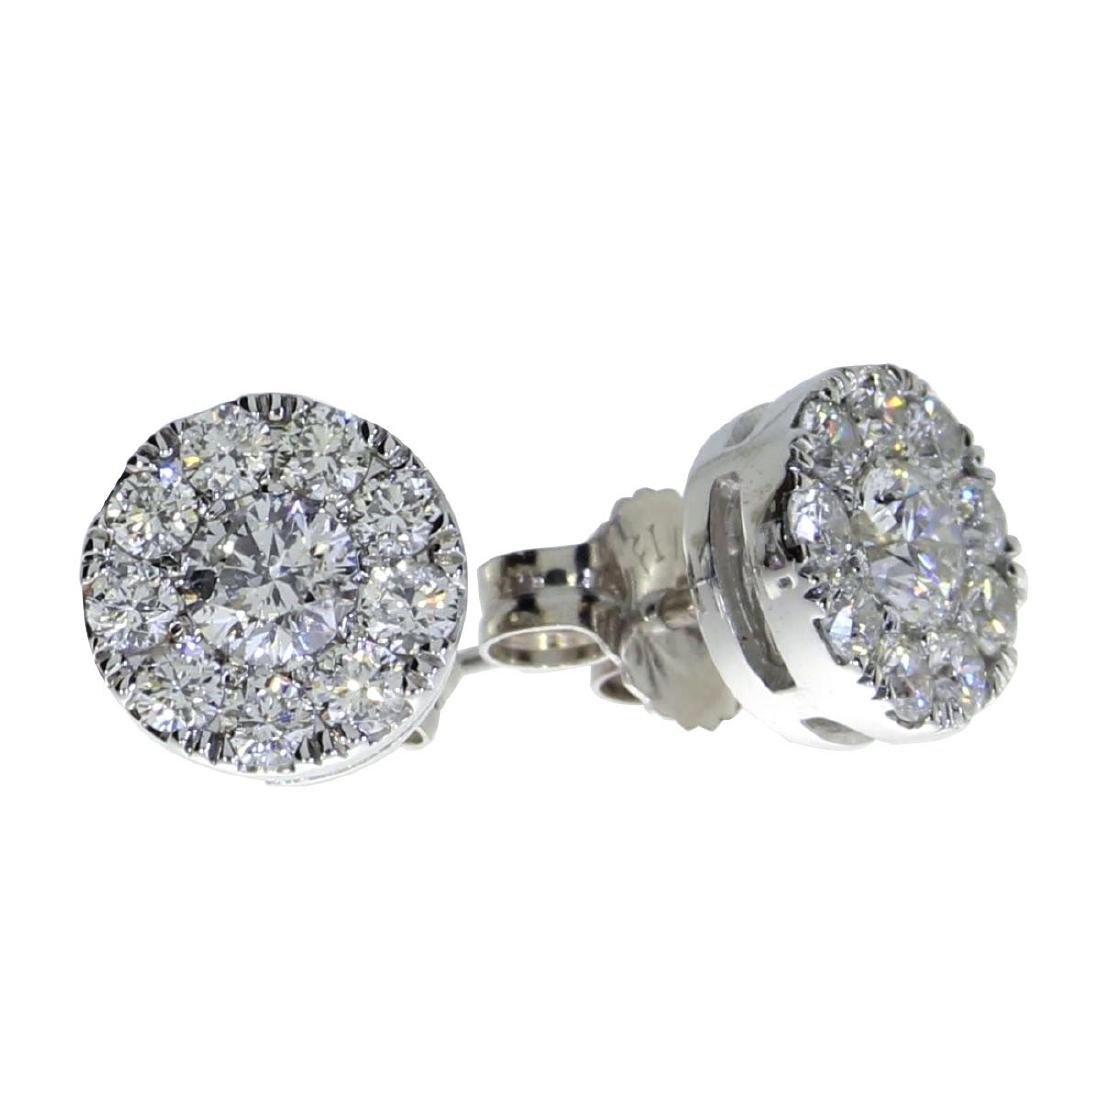 Certified 14K White Gold .75 ct Diamond Cluster Stud Ea